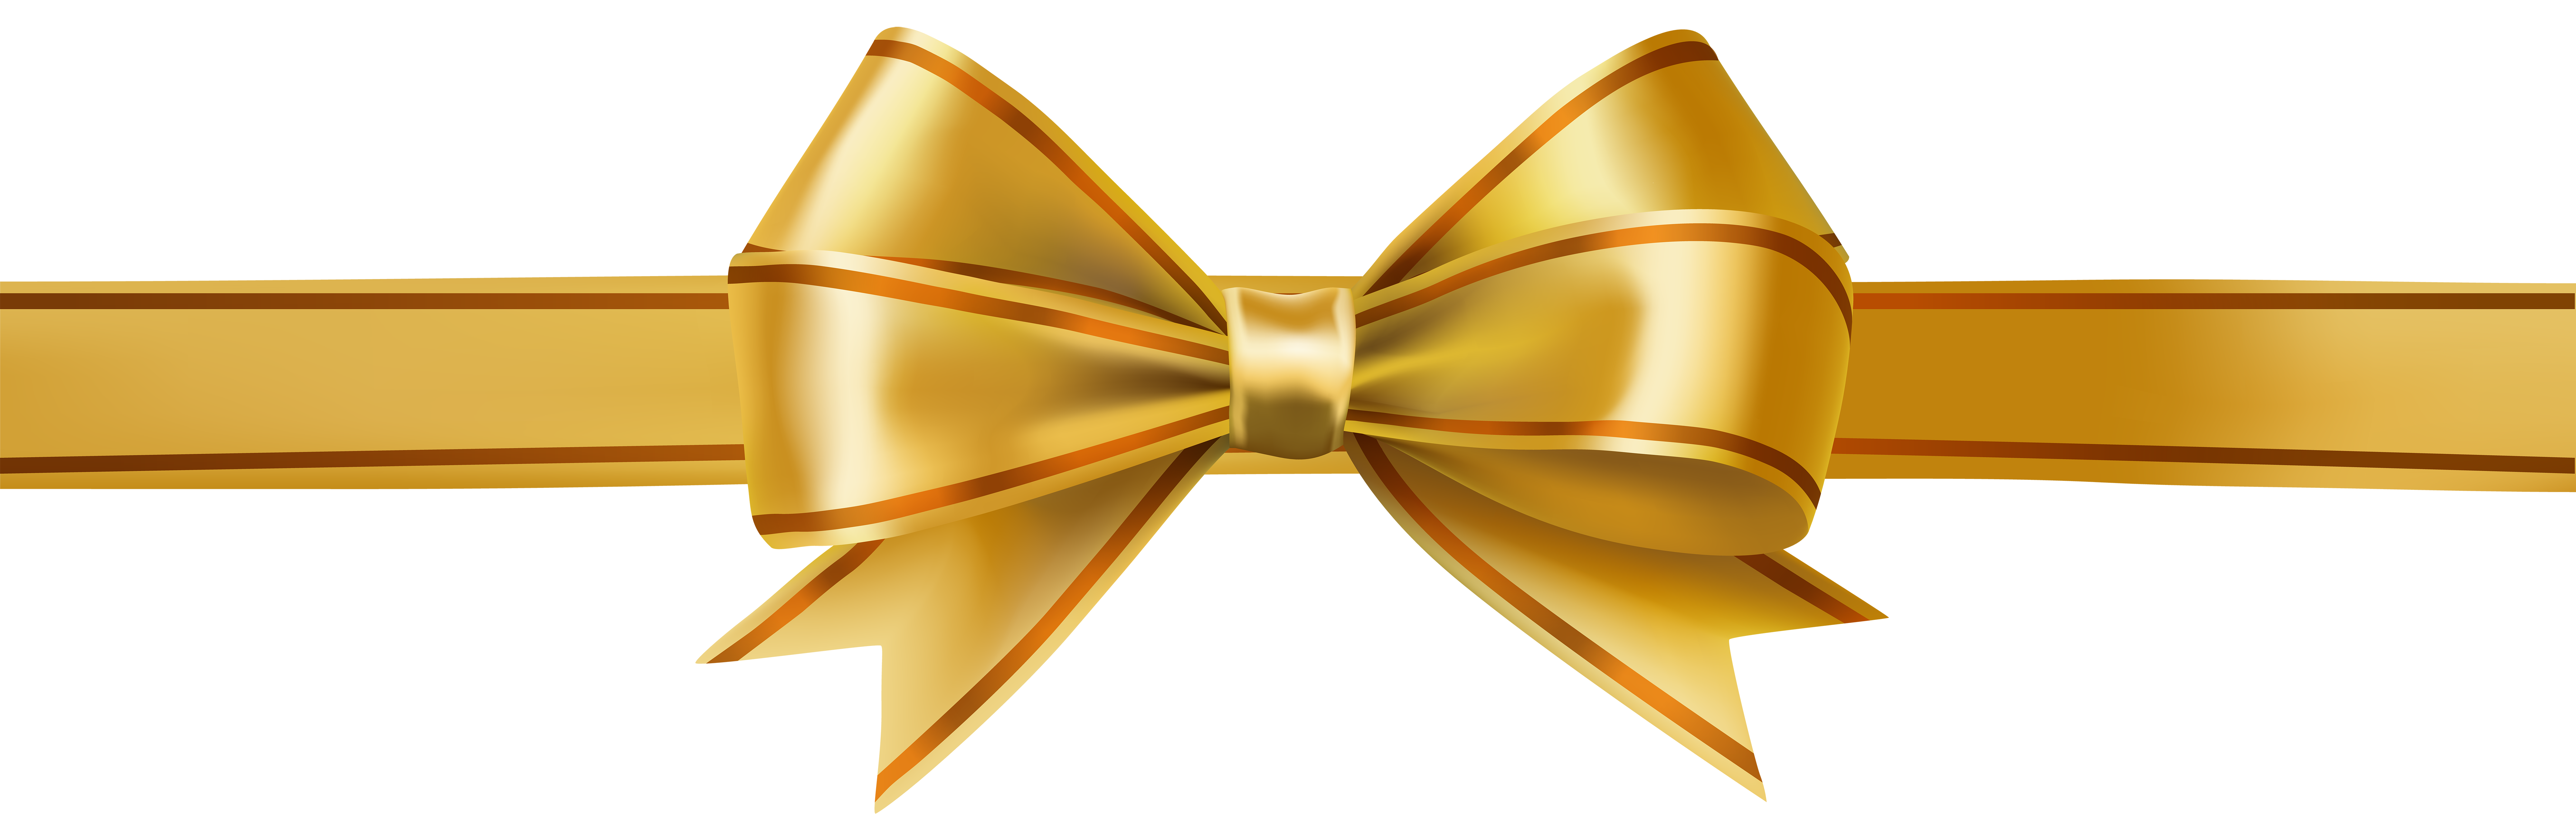 Gold christmas bow clipart freeuse Ribbon Clip art - Golden Bow PNG Clip Art Image 8000*2604 transprent ... freeuse